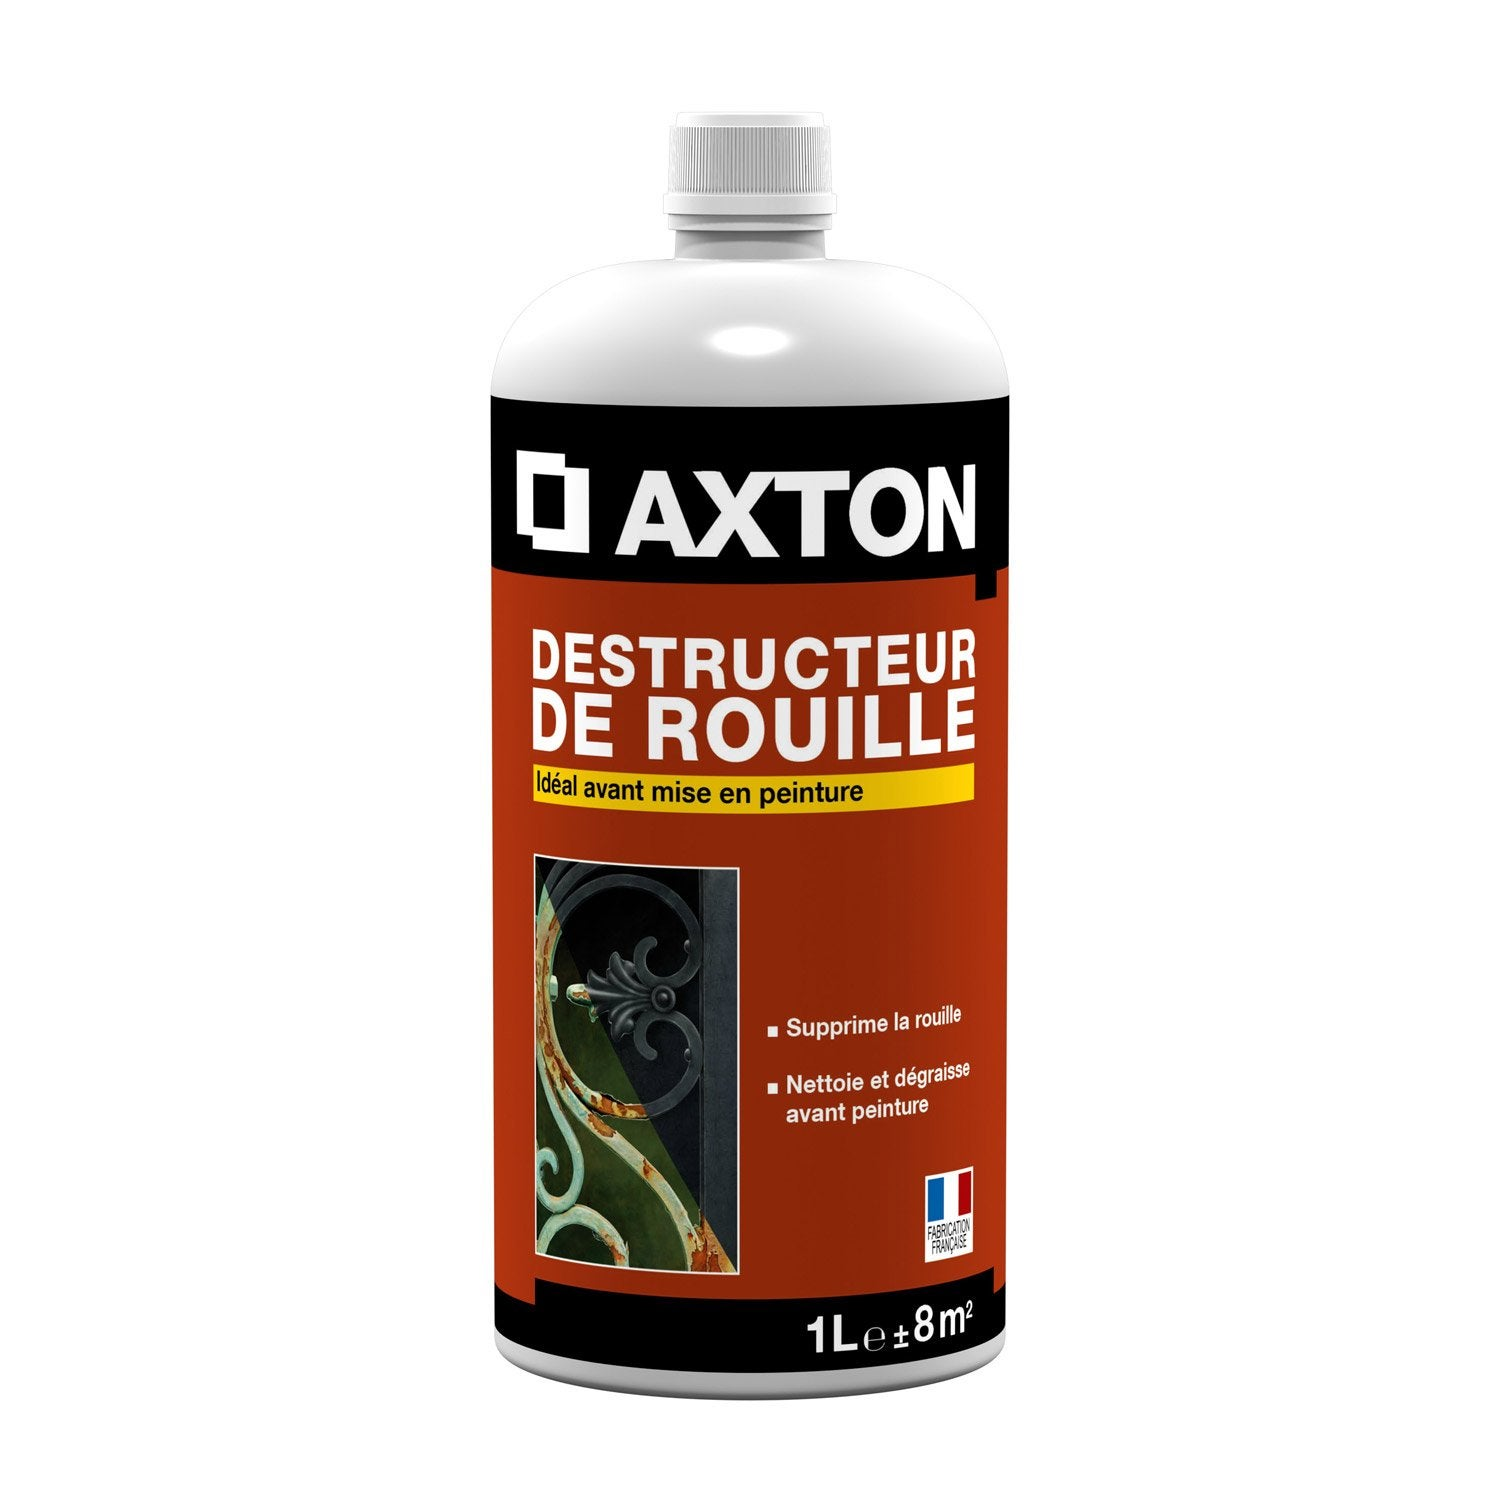 Destructeur de rouille ext rieur axton 1 l leroy merlin for Produit cuisine